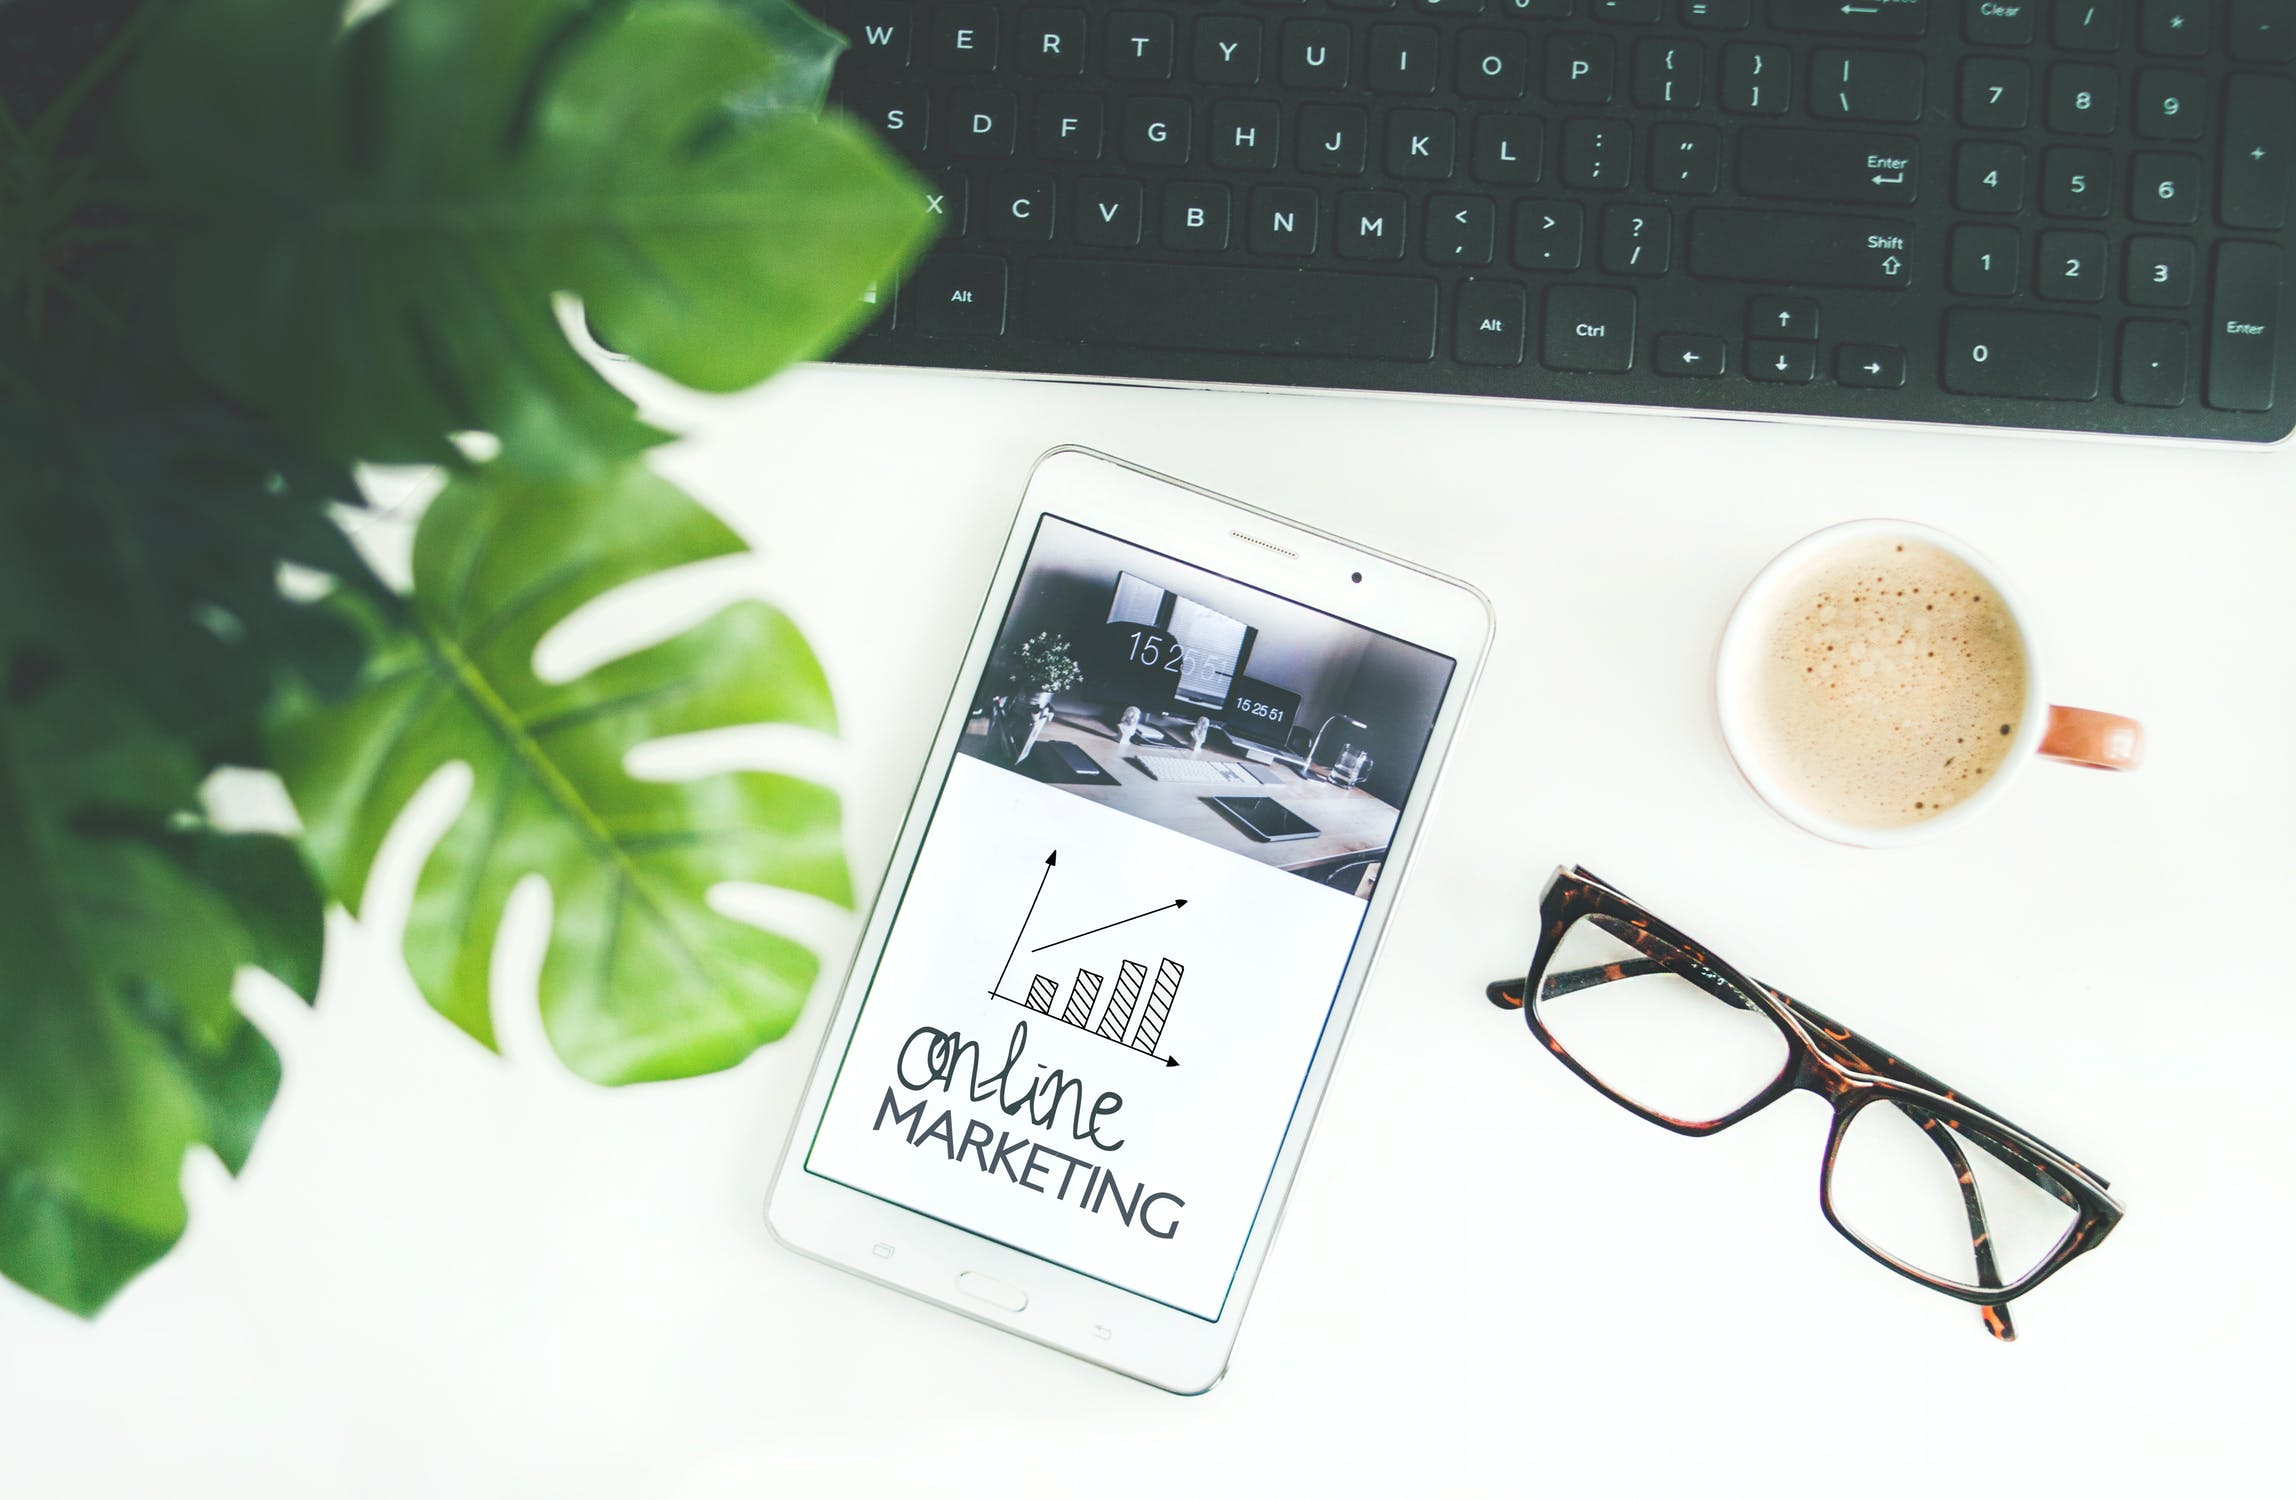 19 Digital Marketing Podcasts that Make You a Better All-Around Digital Marketer